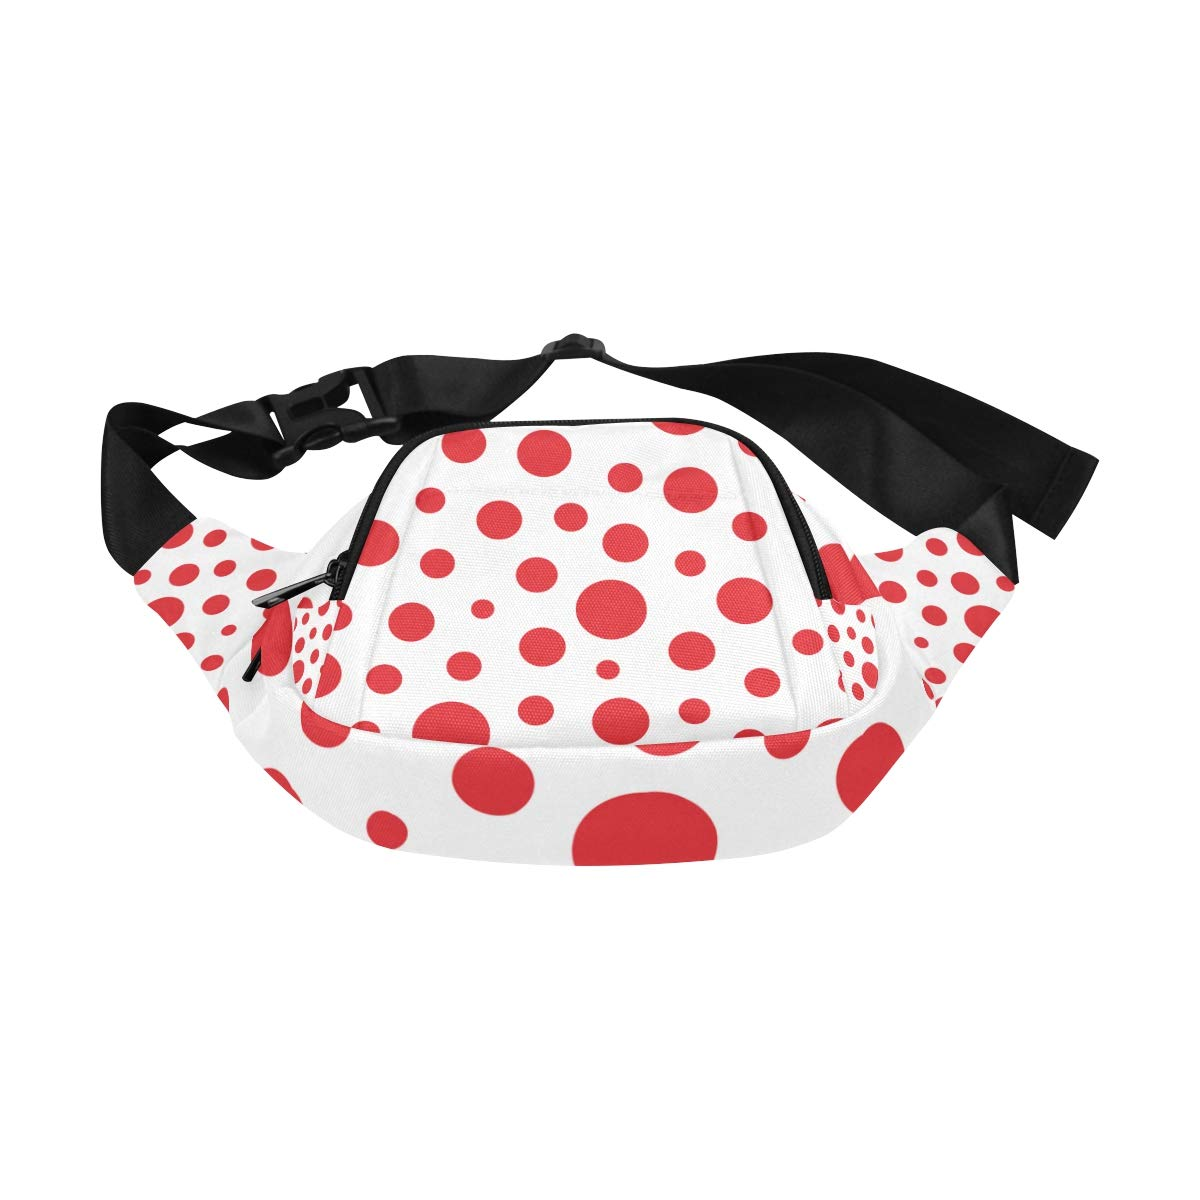 Big Circles And Dots Of Red Color Fenny Packs Waist Bags Adjustable Belt Waterproof Nylon Travel Running Sport Vacation Party For Men Women Boys Girls Kids